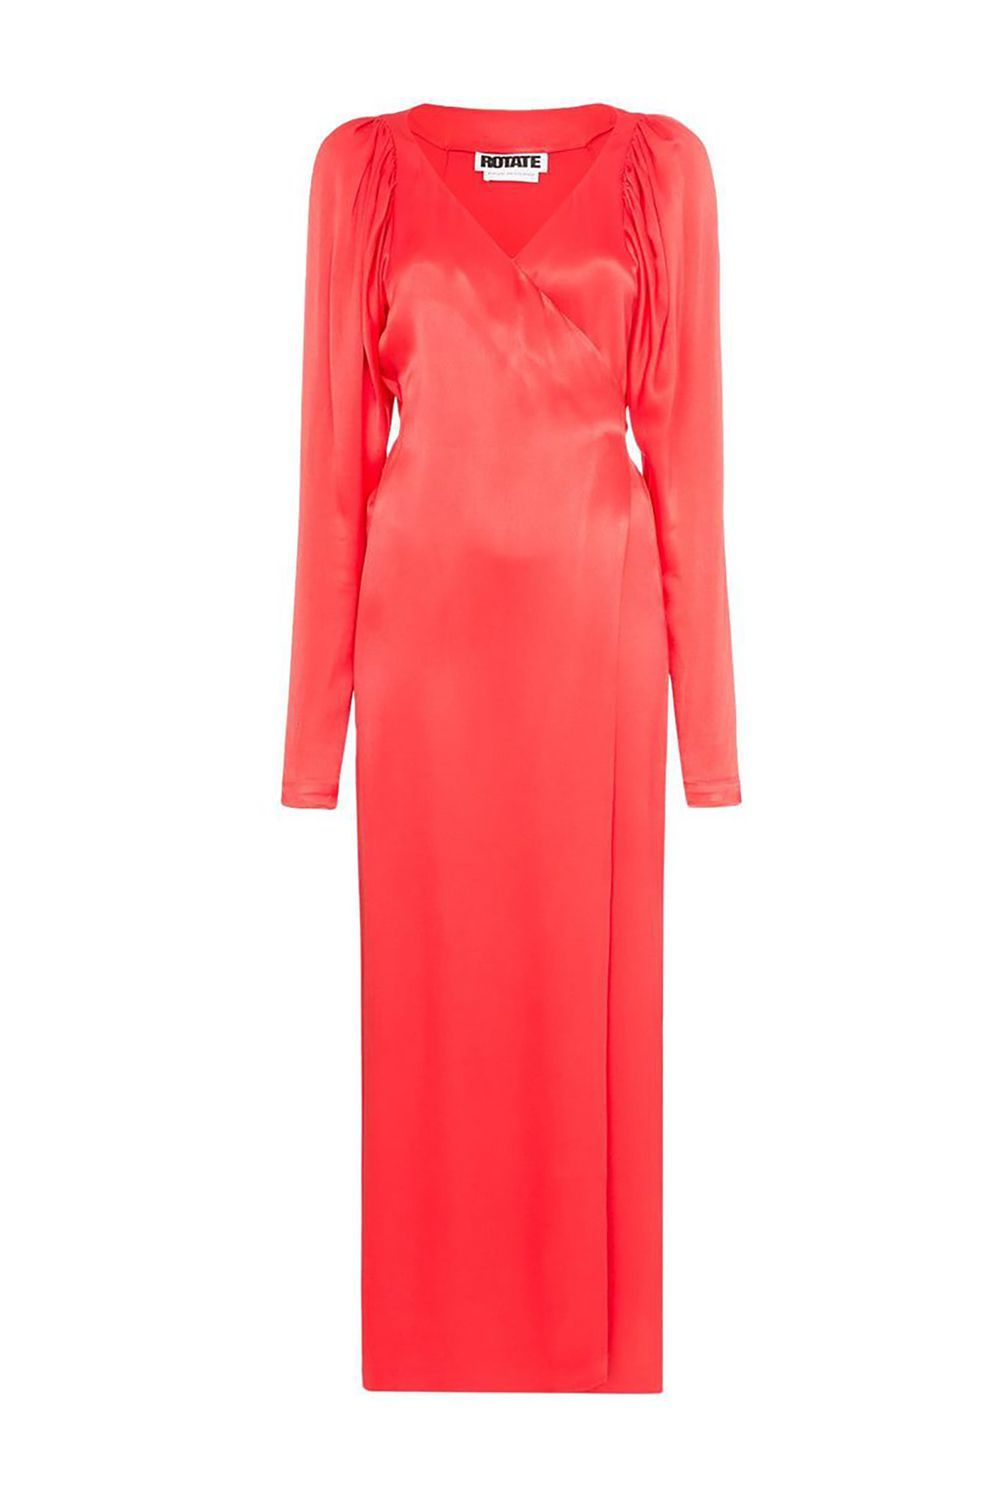 Most Conservative V-Neck Tie Waist Wrap Dress Rotate farfetch.com $138.91 SHOP IT Celebrate being seated at a table with your boyfriend's grandmother in a dress that's demure but not dowdy. This wrap dress is bright, loud, and silky.